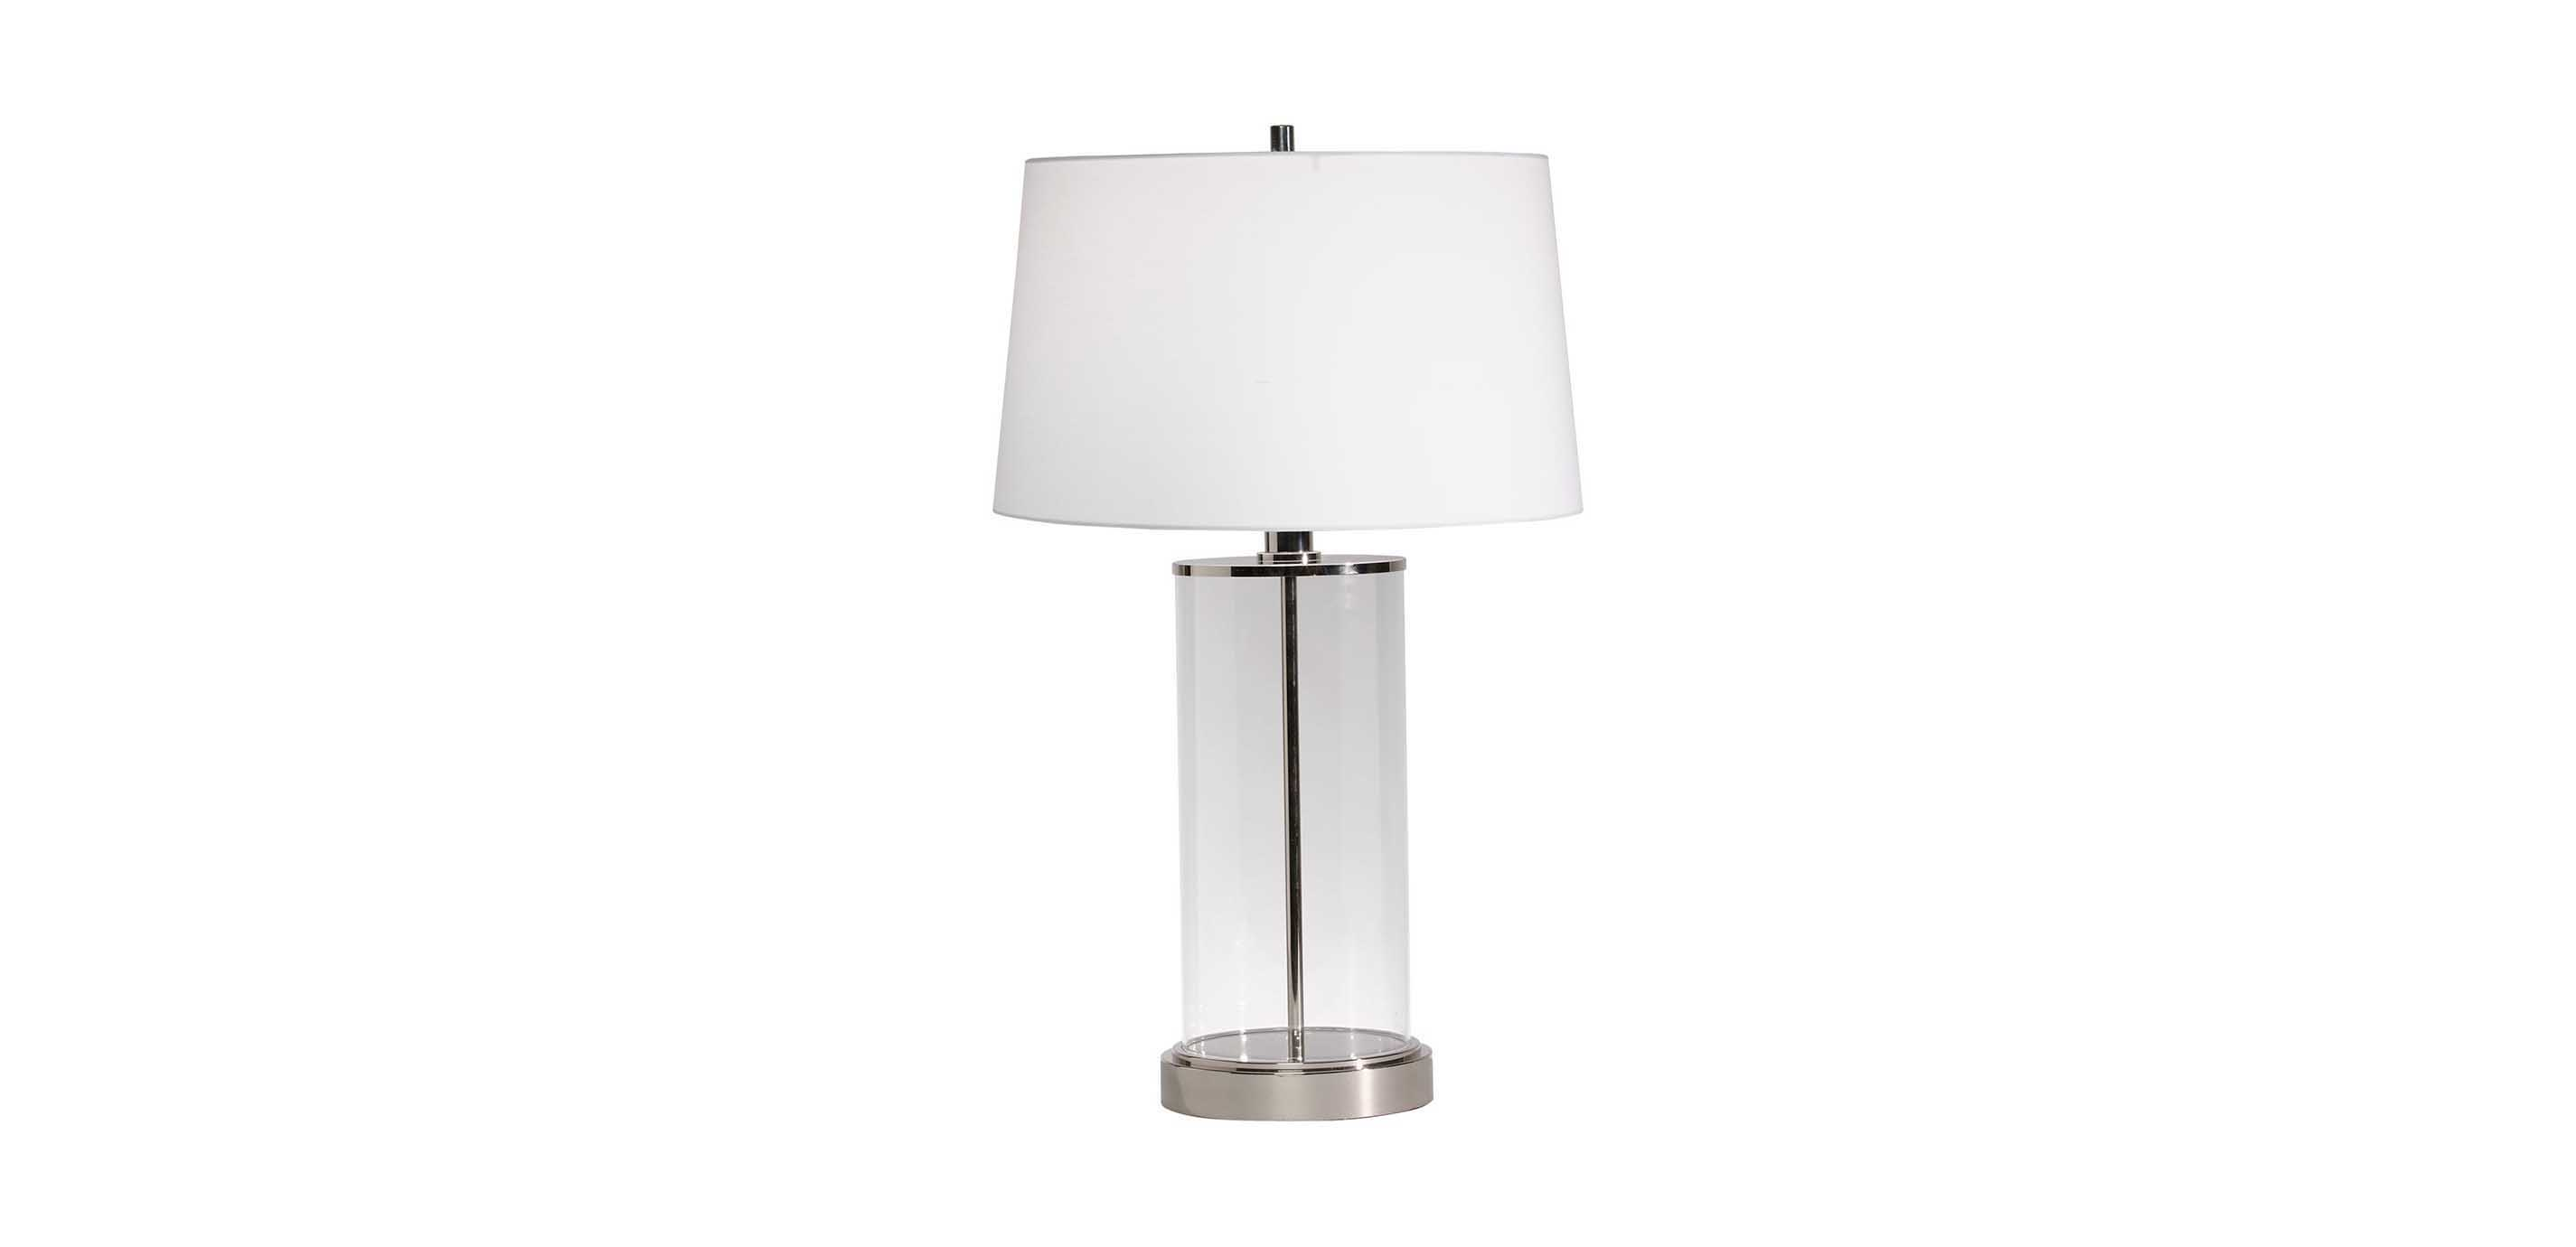 Images Glass Cylinder Table Lamp , , Large_gray